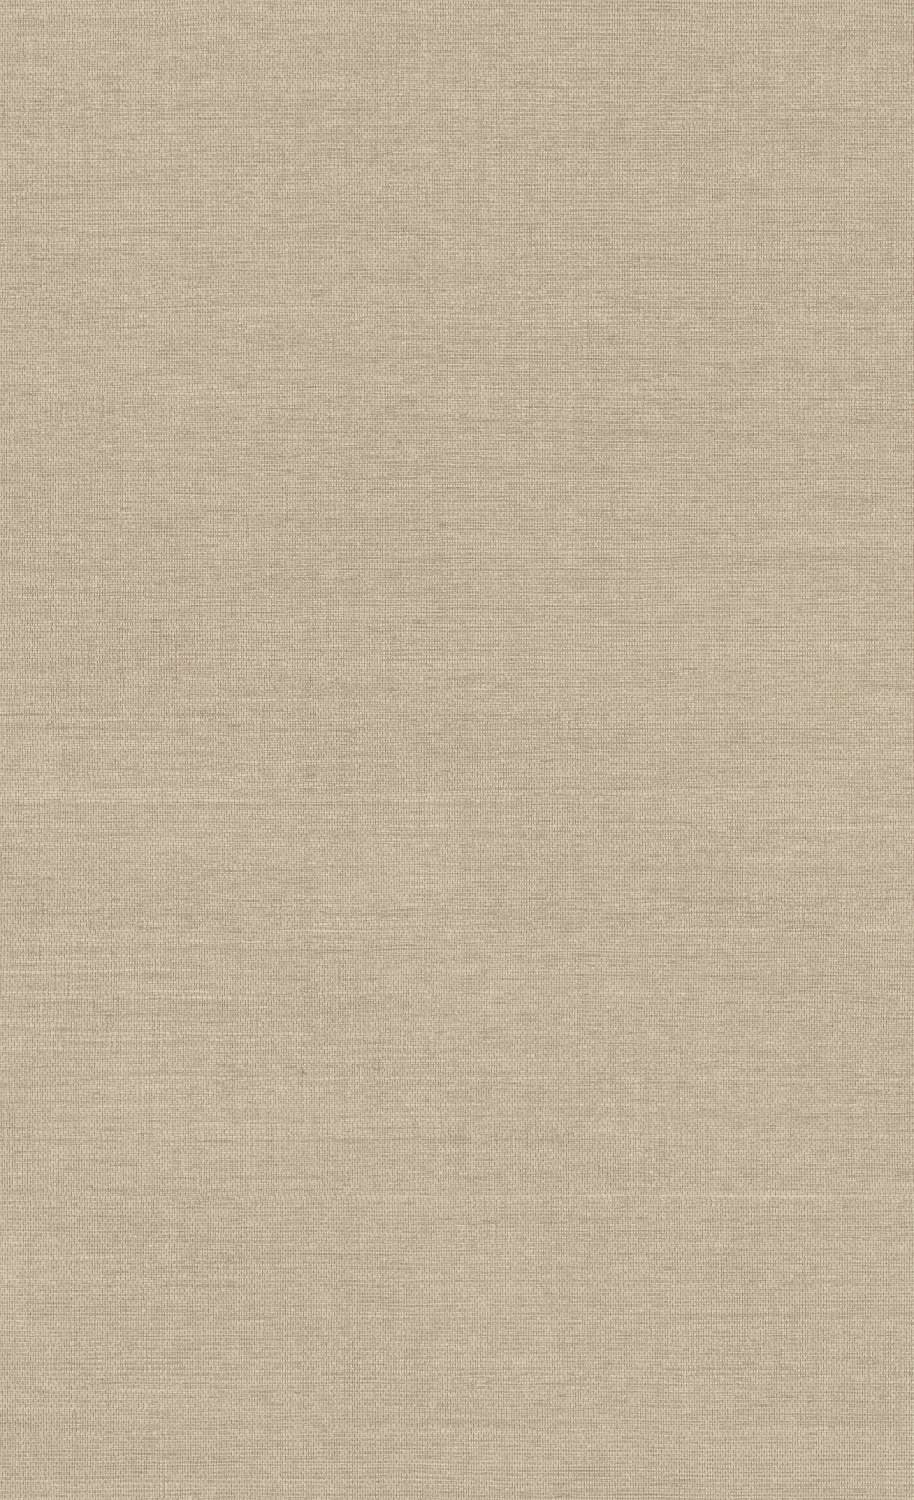 Light Brown Commercial Wallpaper C7259. Restaurant wallpaper. Commercial wallpaper. Corporate wallpaper. Vinyl wallpaper. Hospitality wallpaper. Health care wallpaper. Textured wallpaper.